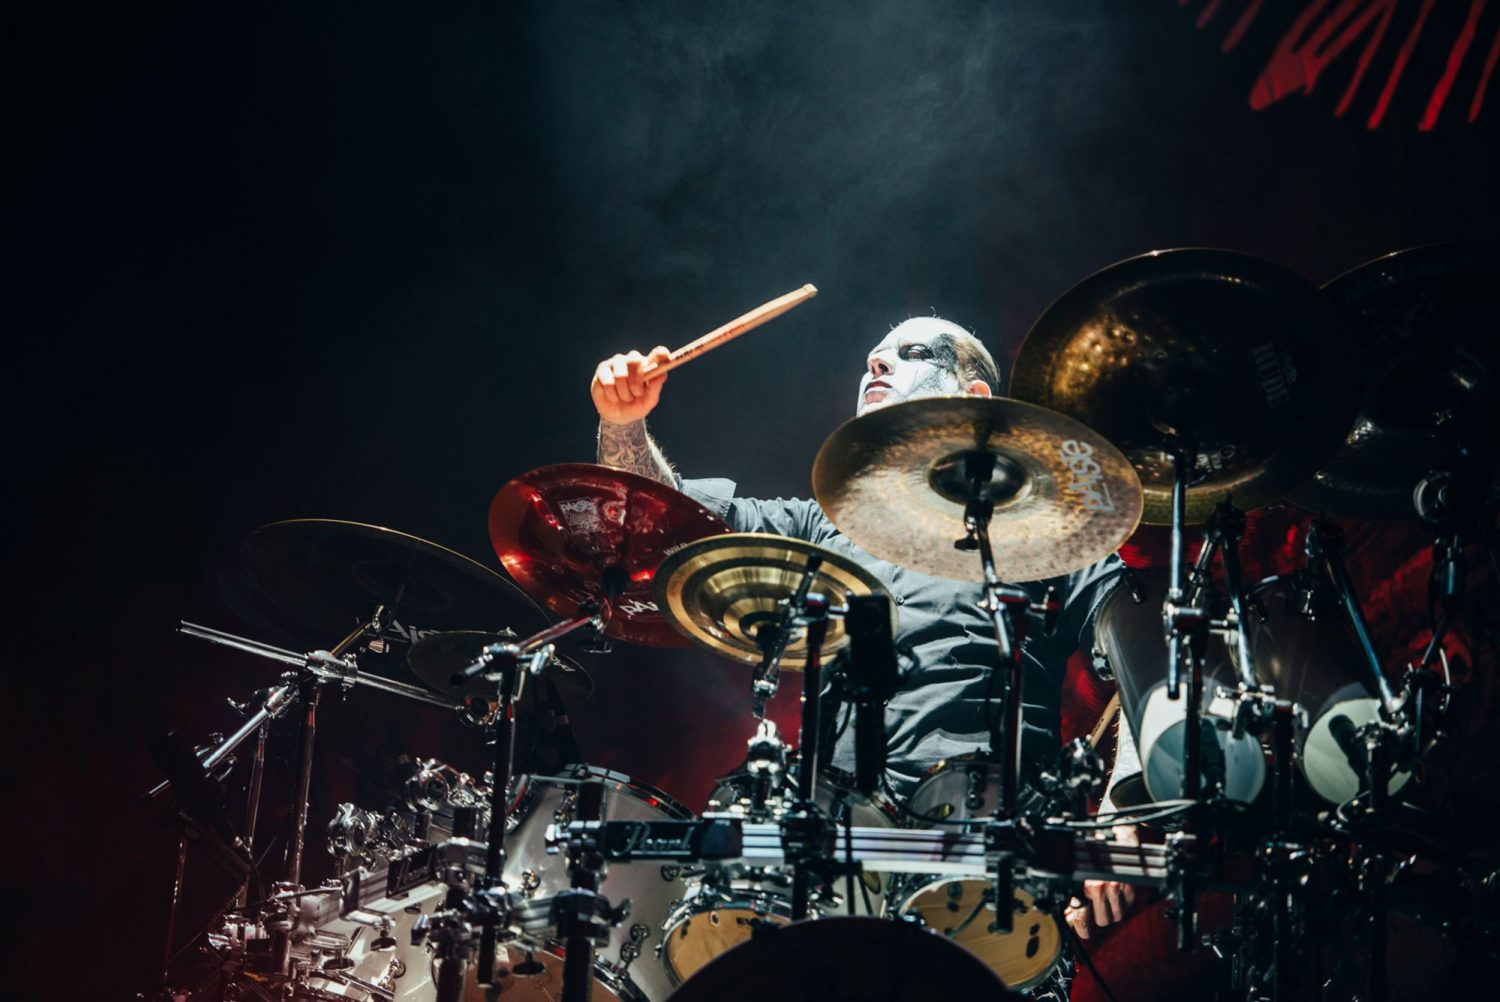 Have a gander at LOADS of photos from Slipknot and Behemoth's massive show at London's O2 Arena